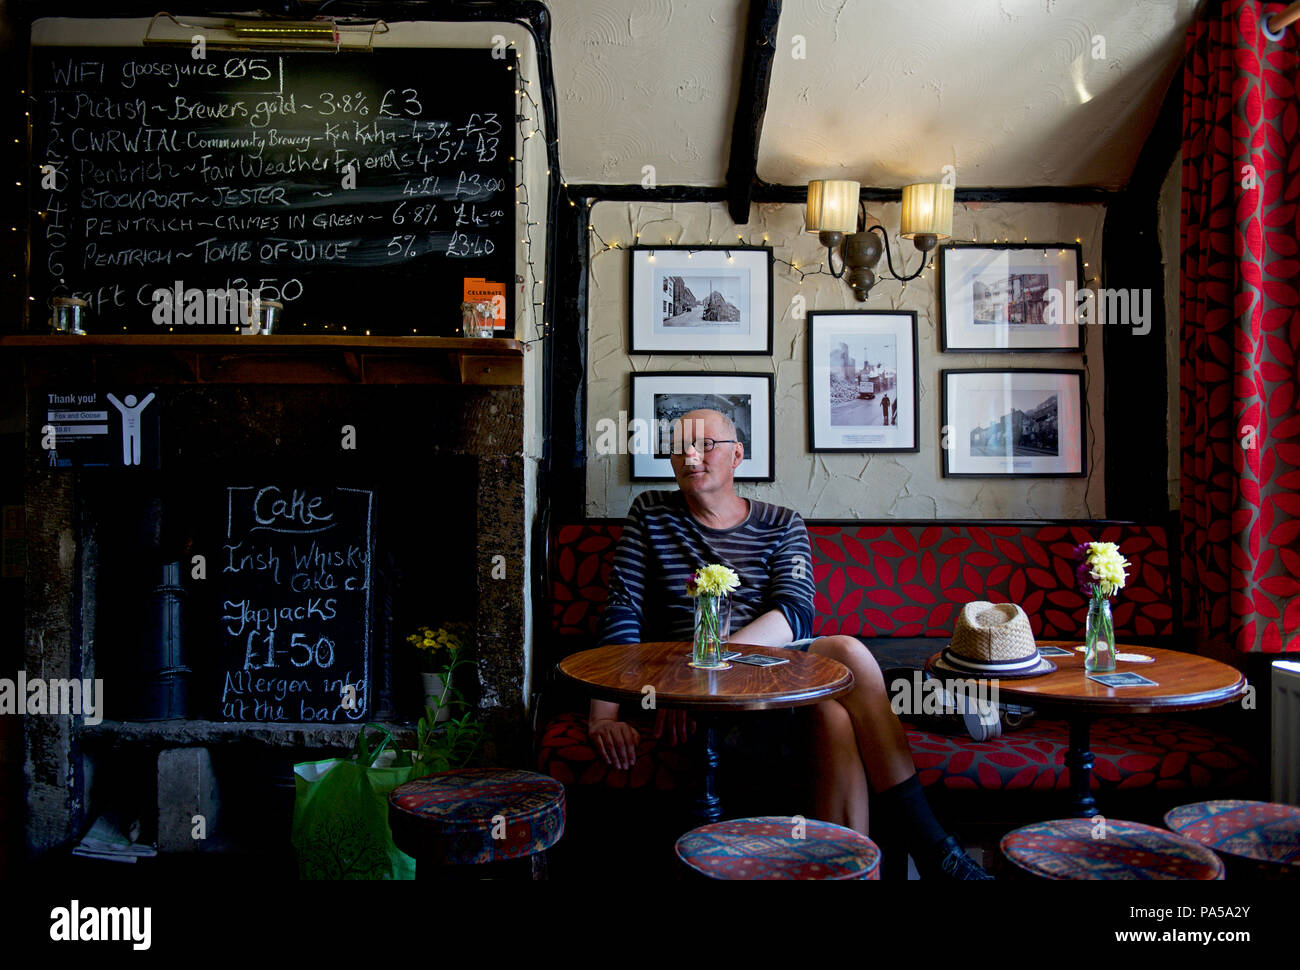 Middle-aged man in the Fox & Goose pub, Hebden Bridge, Calderdale, West Yorkshire, England UK - Stock Image